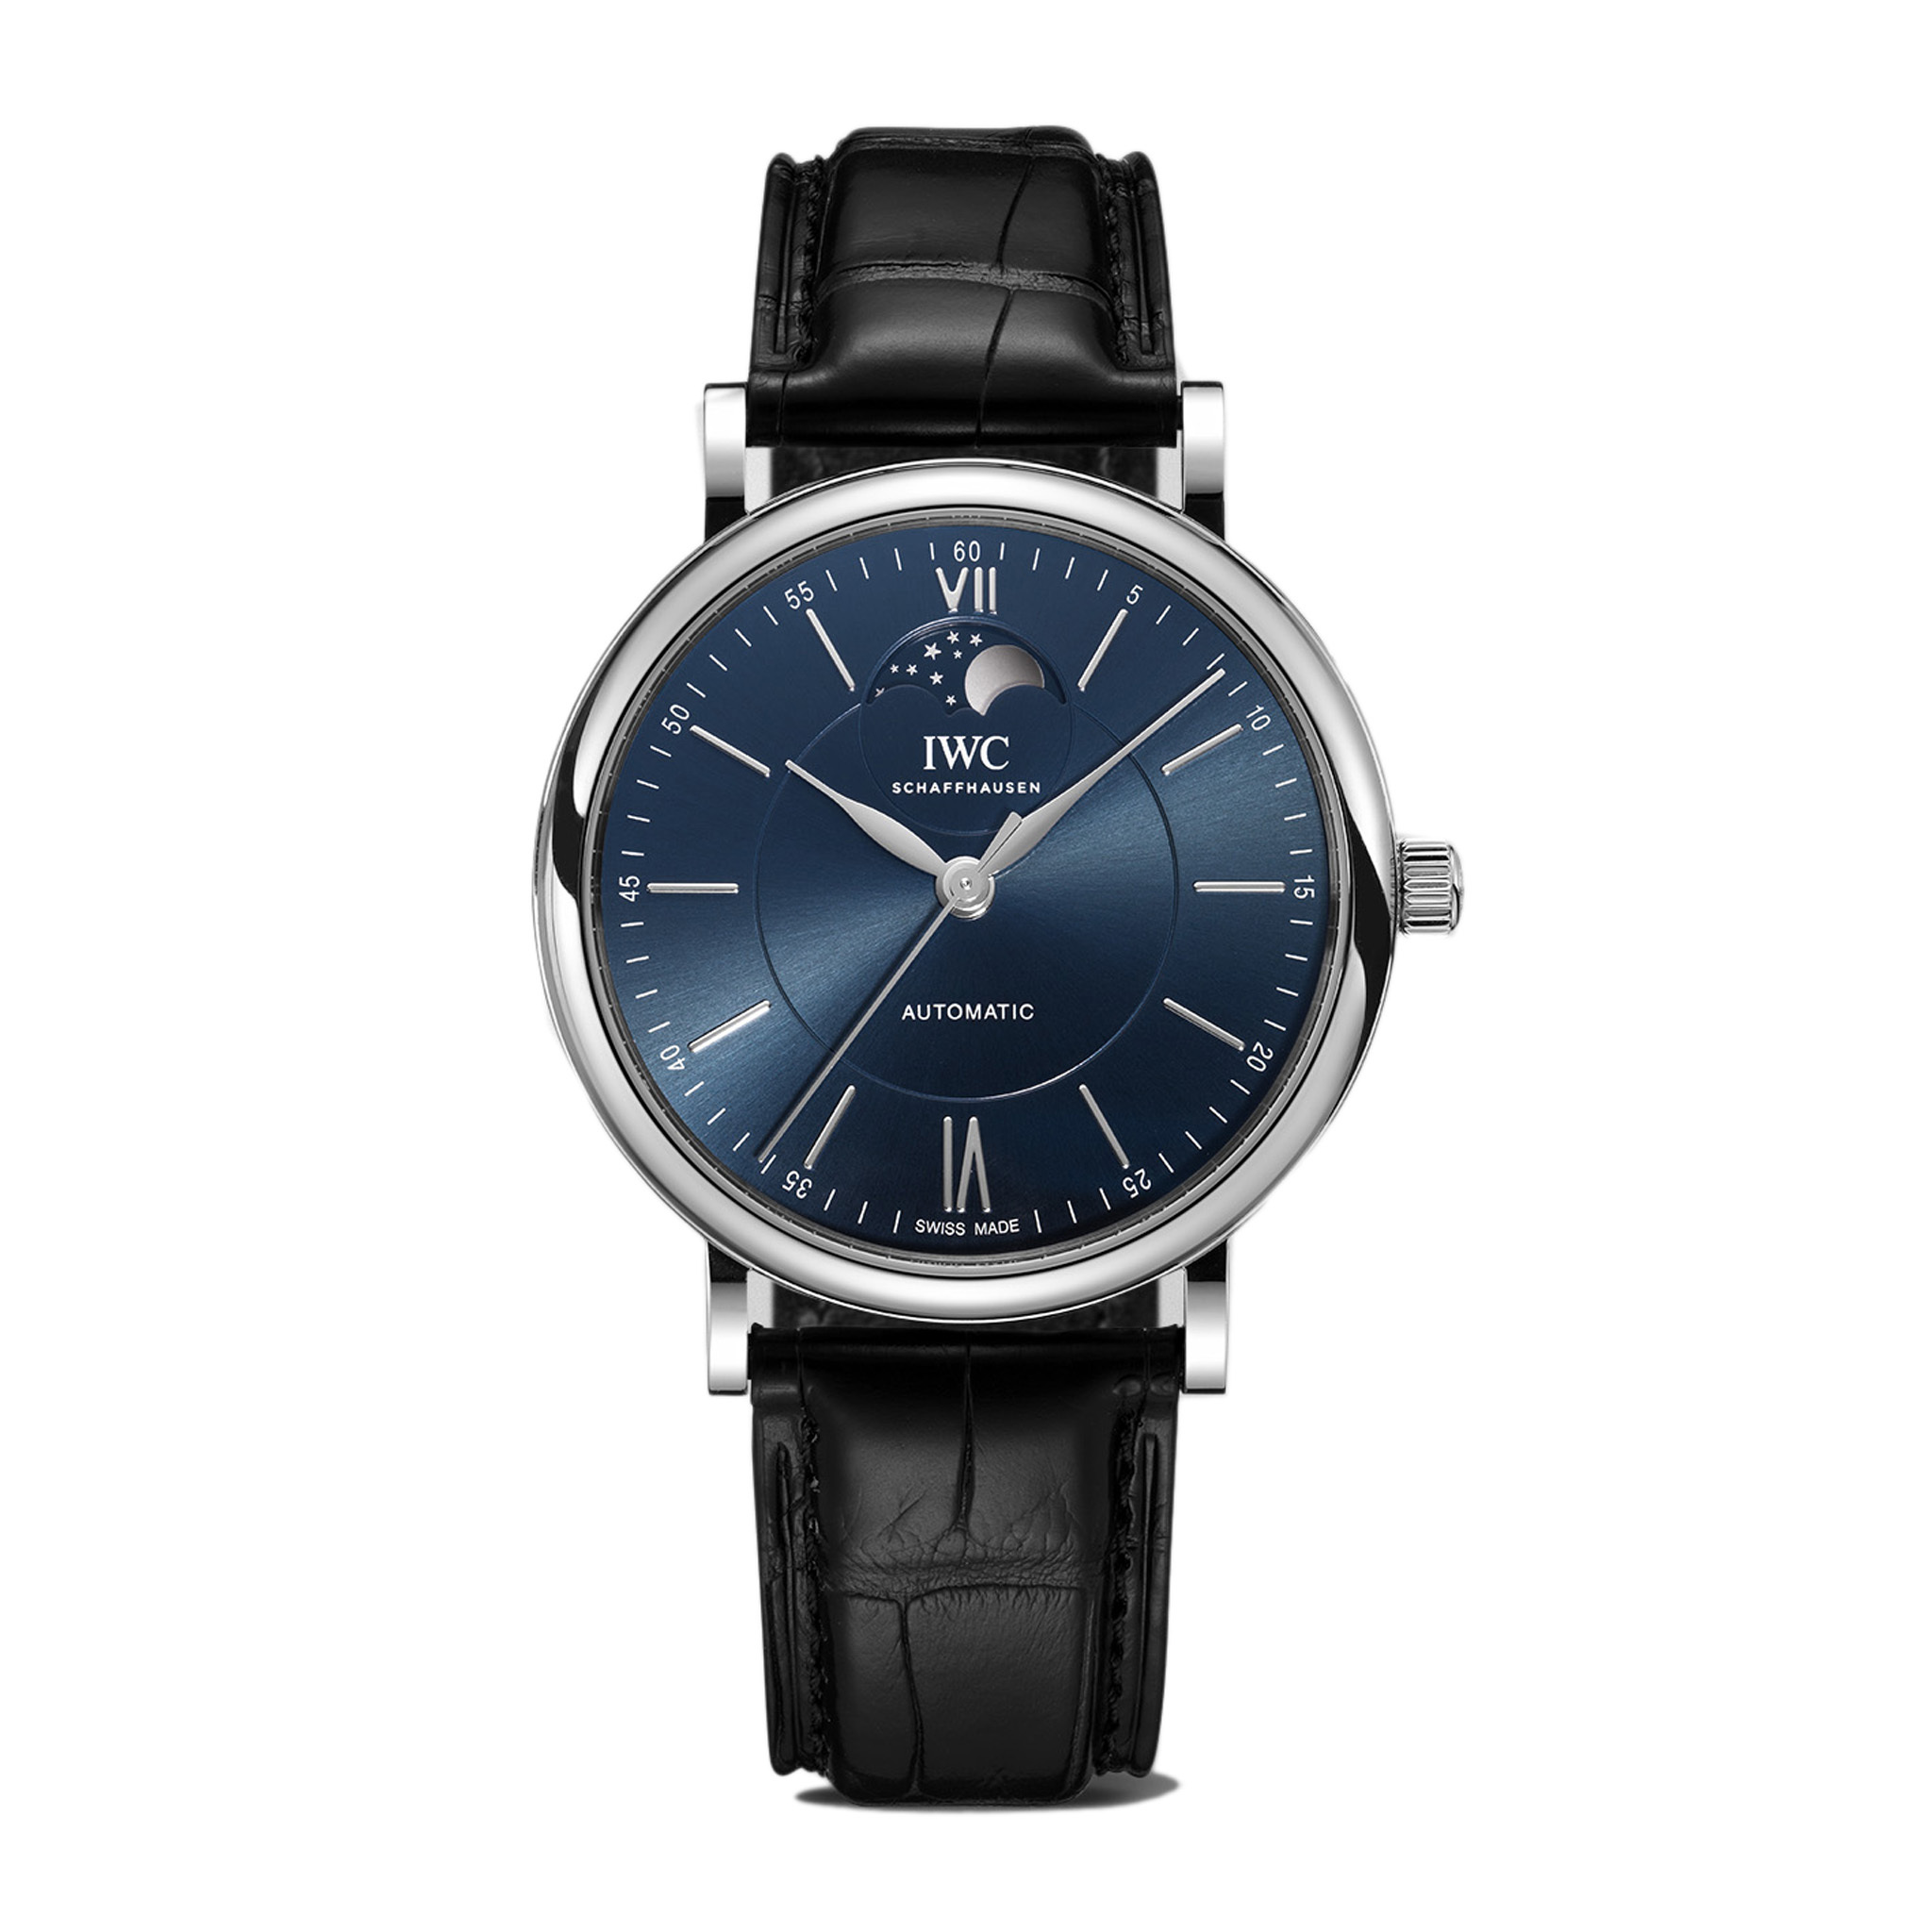 AUTOMATIC MOON PHASE